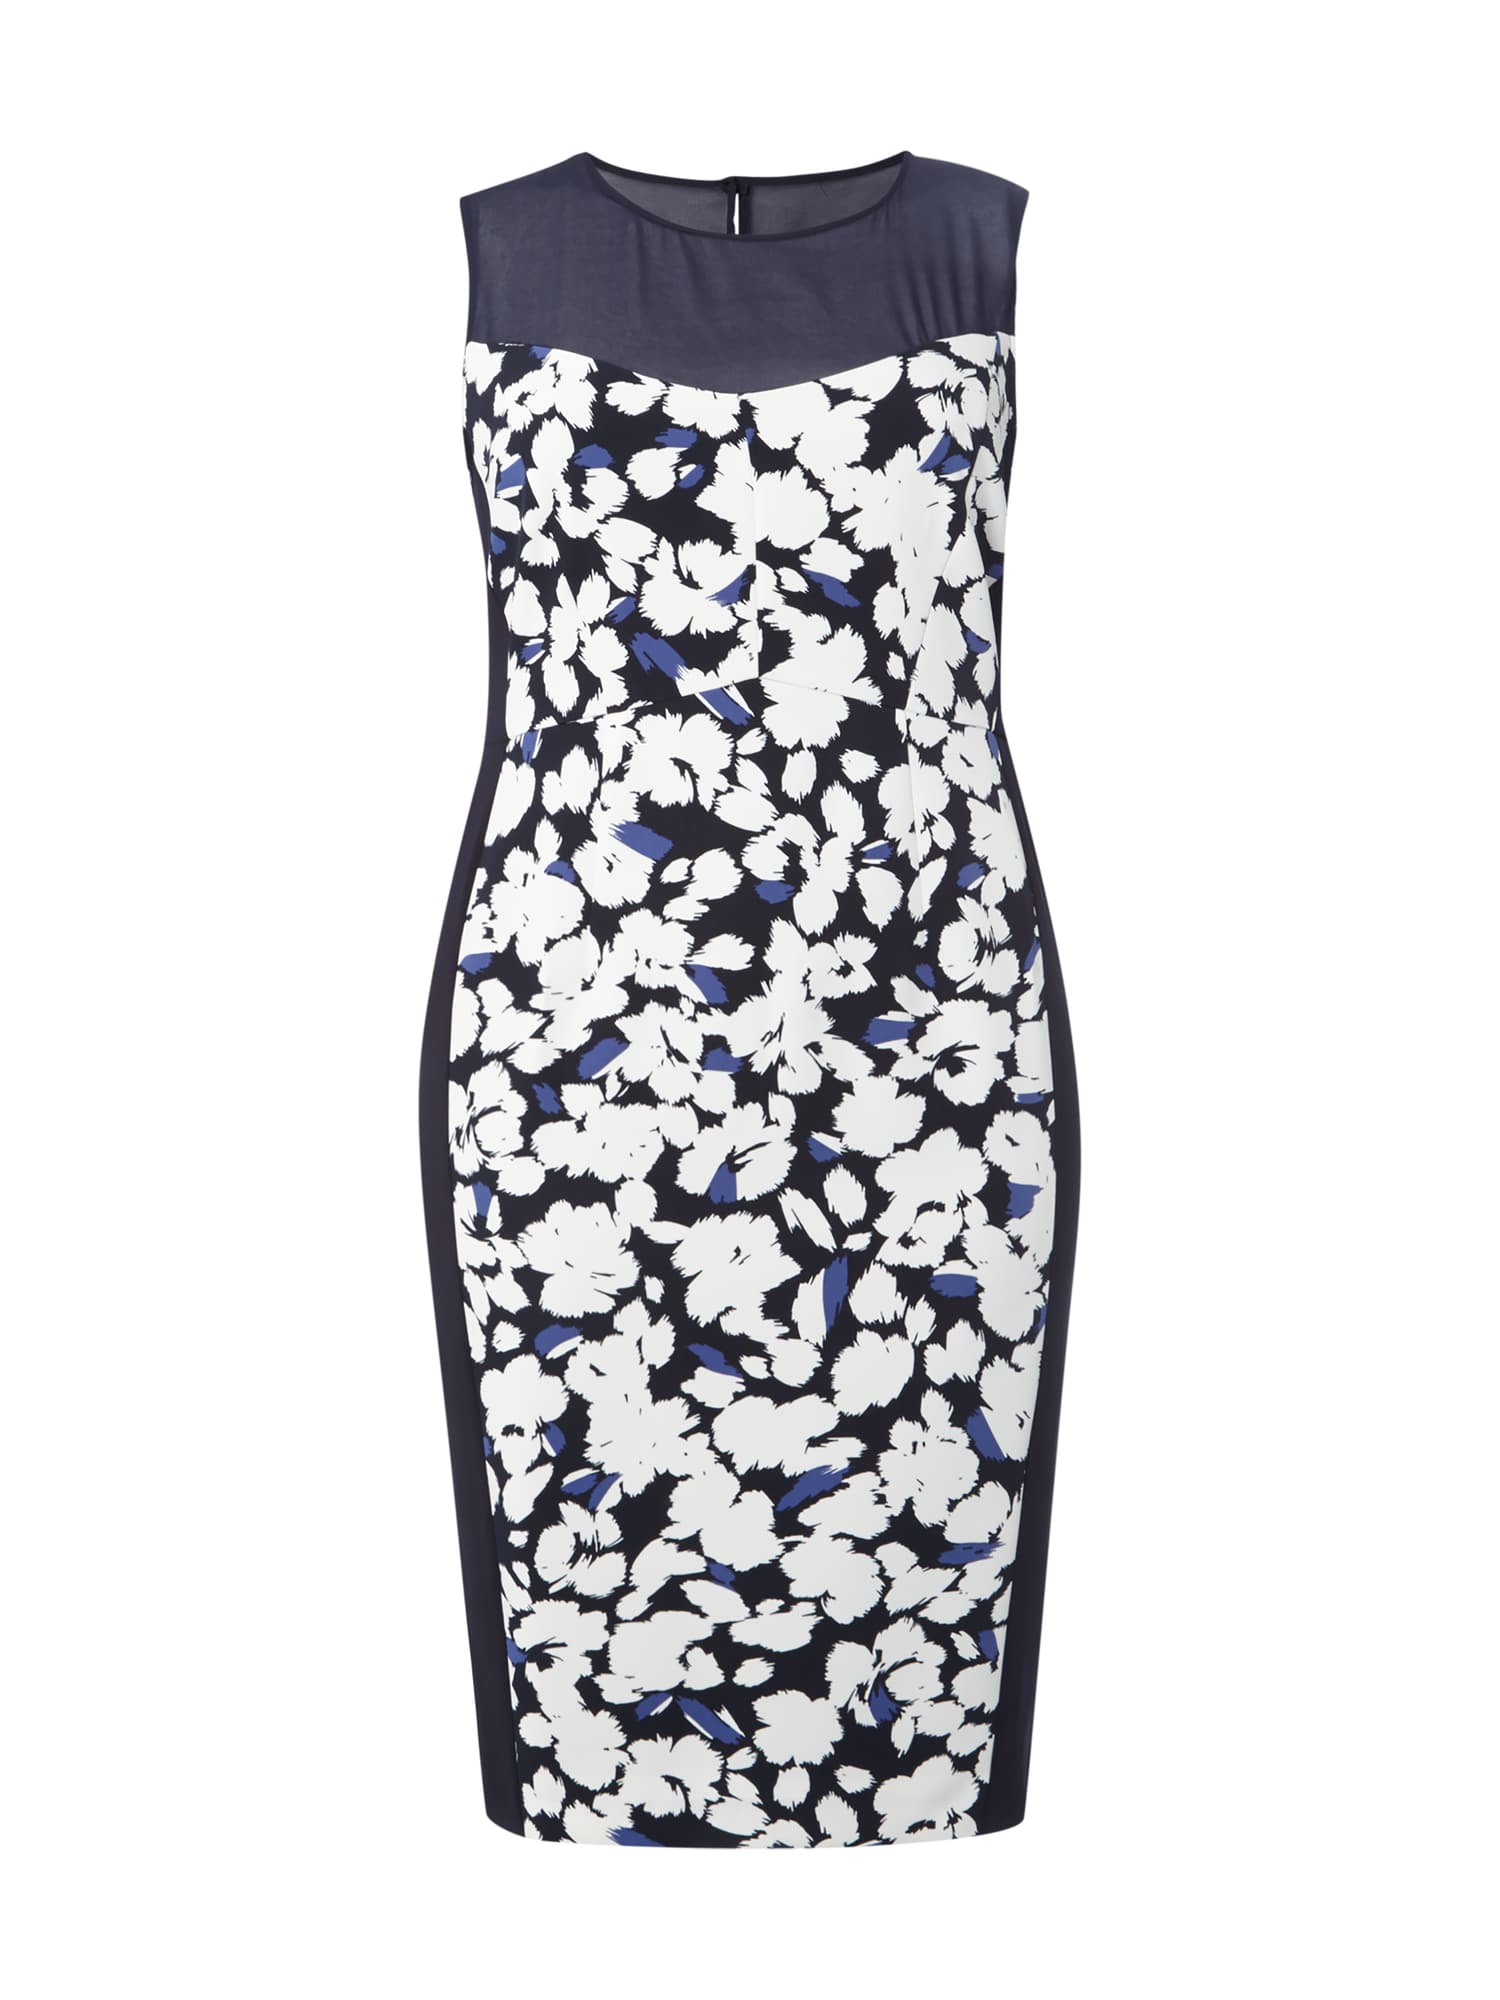 PERSONA-BY-MARINA-RINALDI PLUS SIZE - Kleid mit floralem Muster in ...